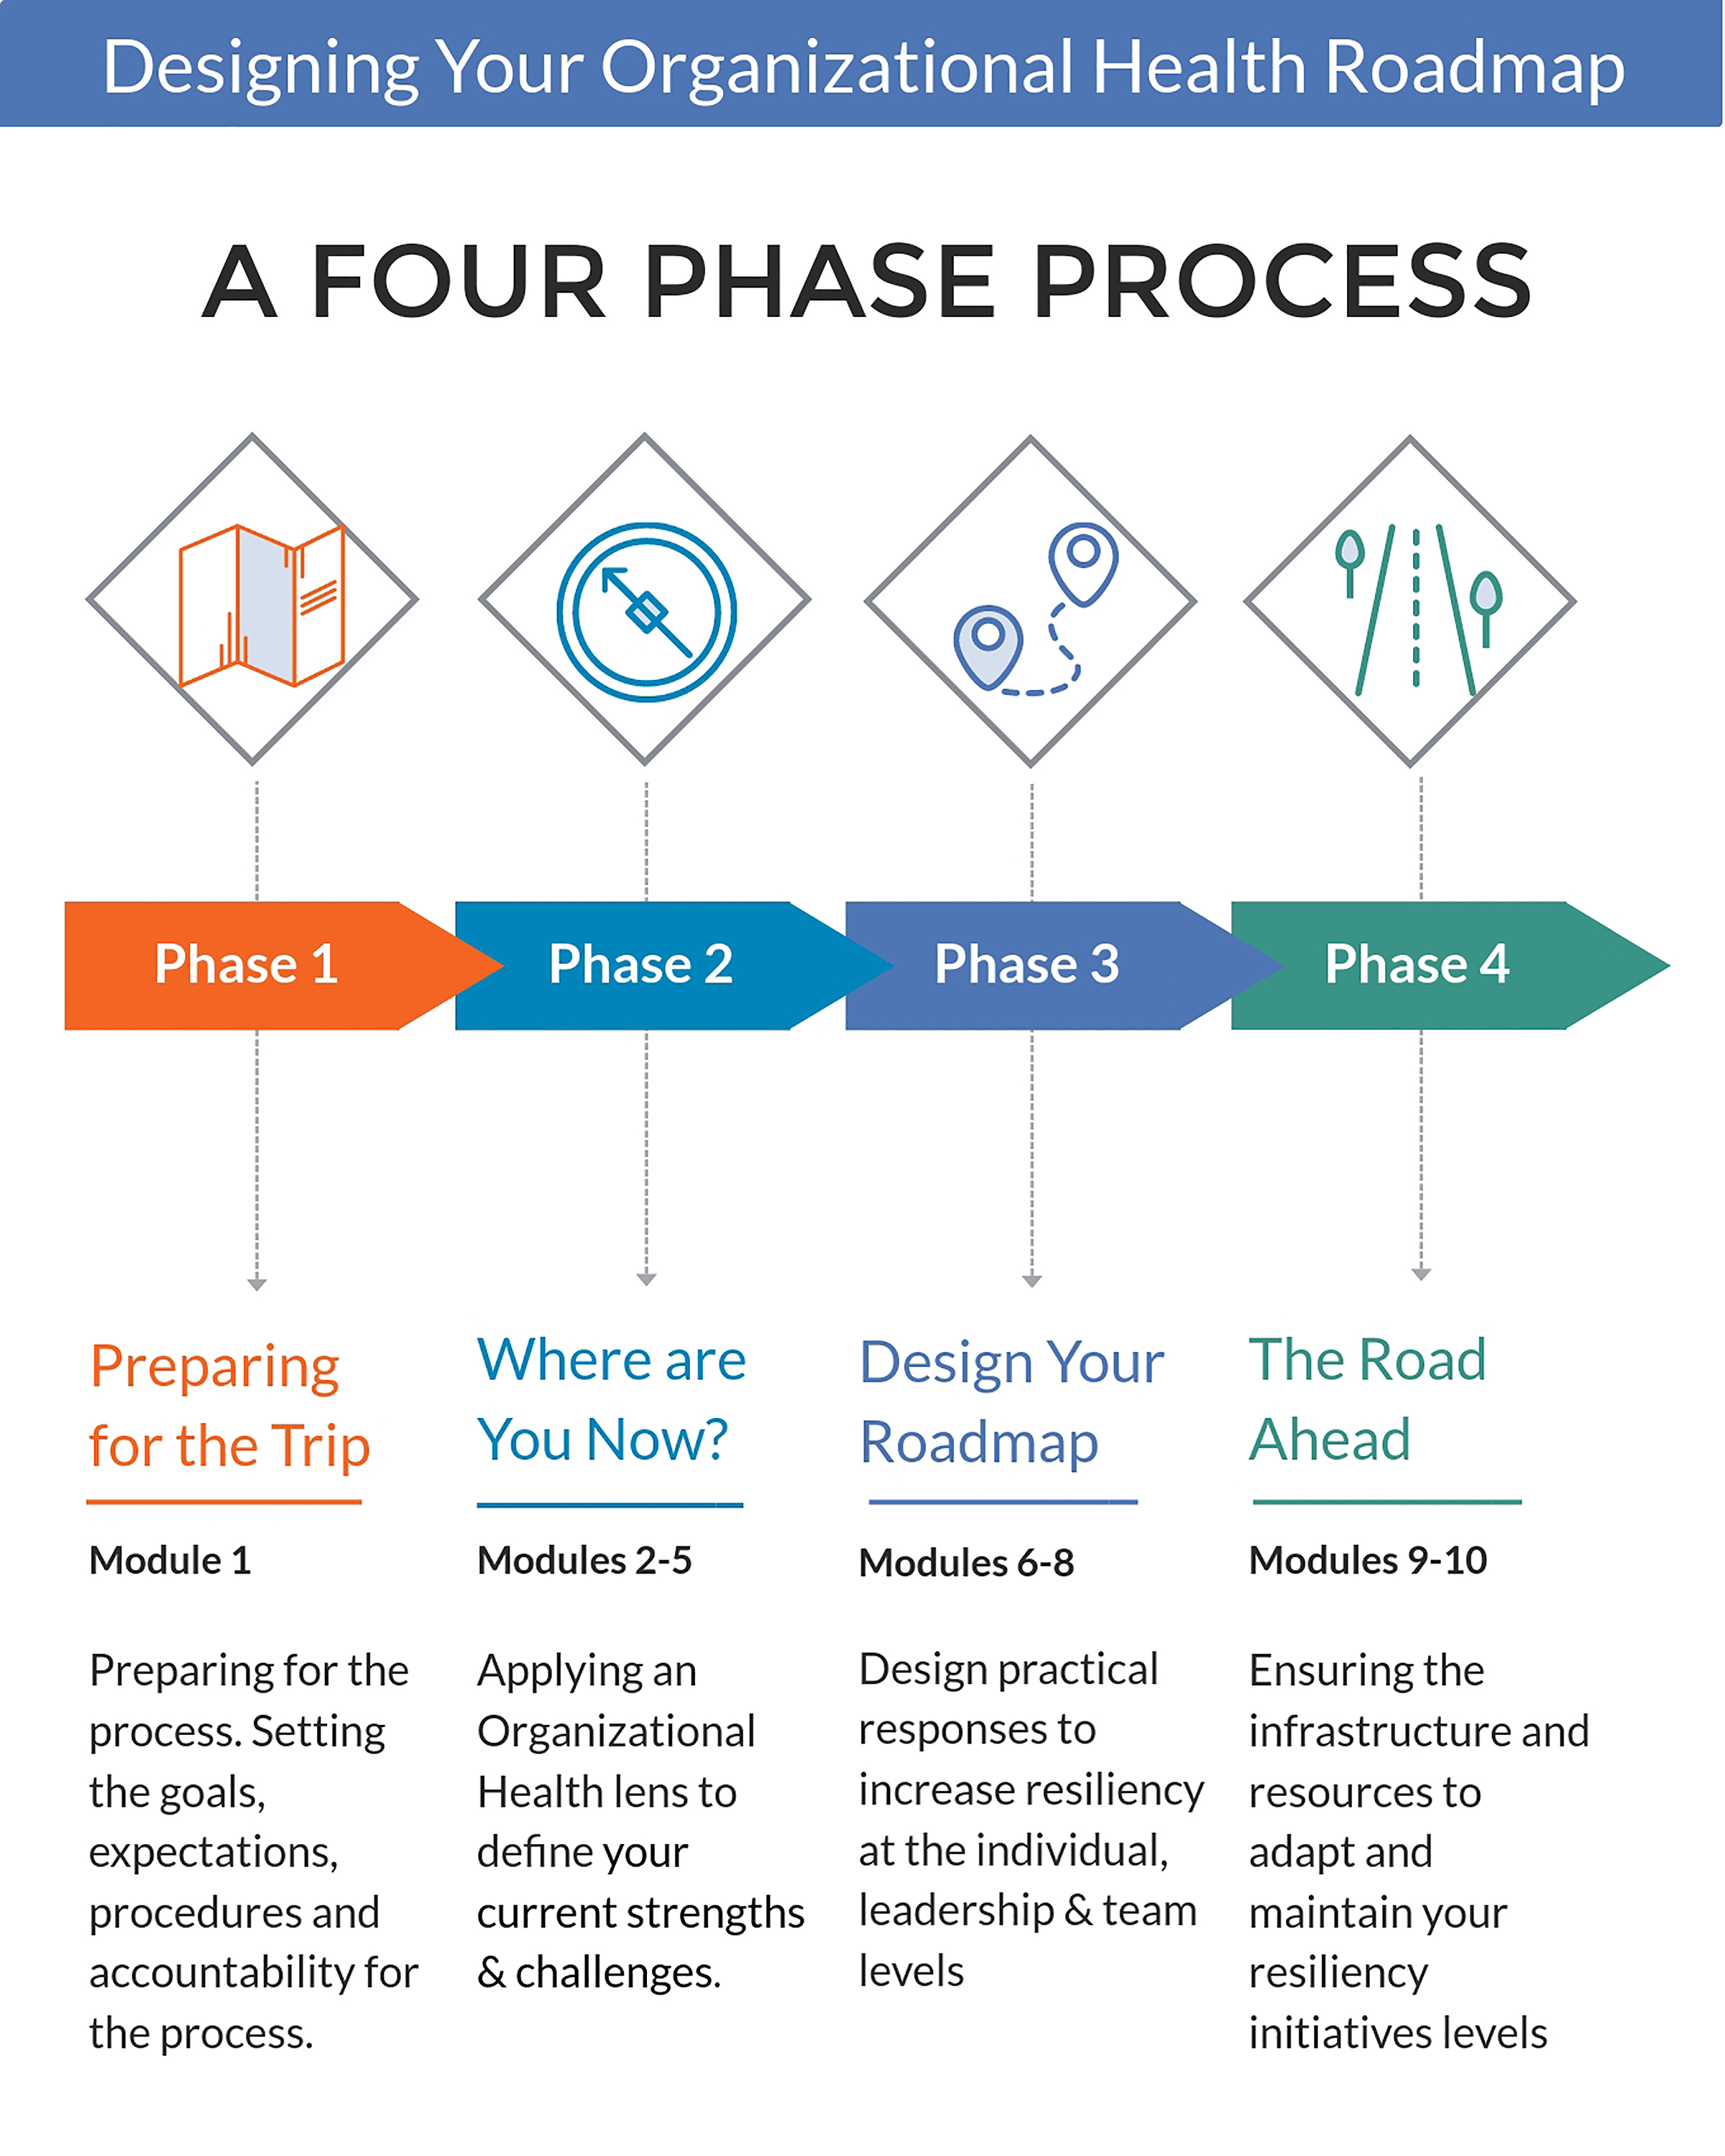 Sample Course Developing Your Organizational Health Roadmap